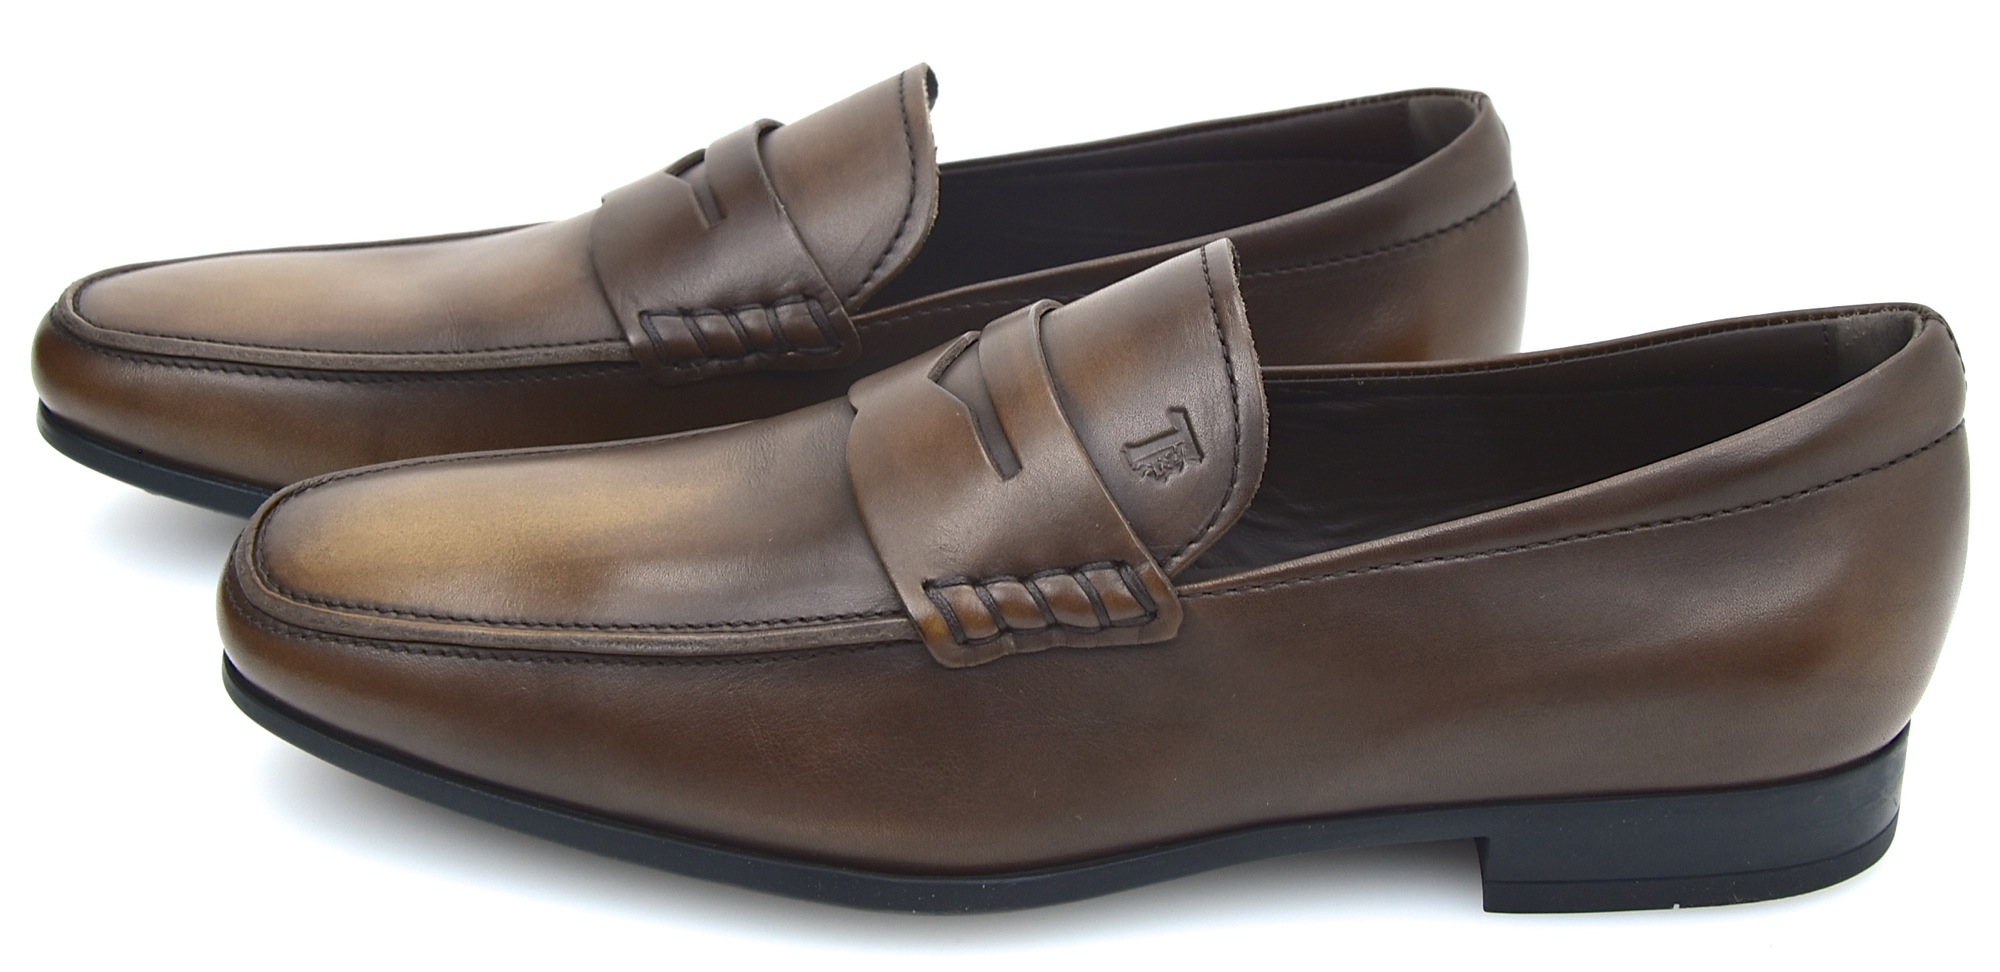 bc09aae42d1 Details about TOD S MAN BUSINESS CLASSIC LOAFERS FORMAL DRESS SHOES LEATHER  XXM0QO00010SADS800